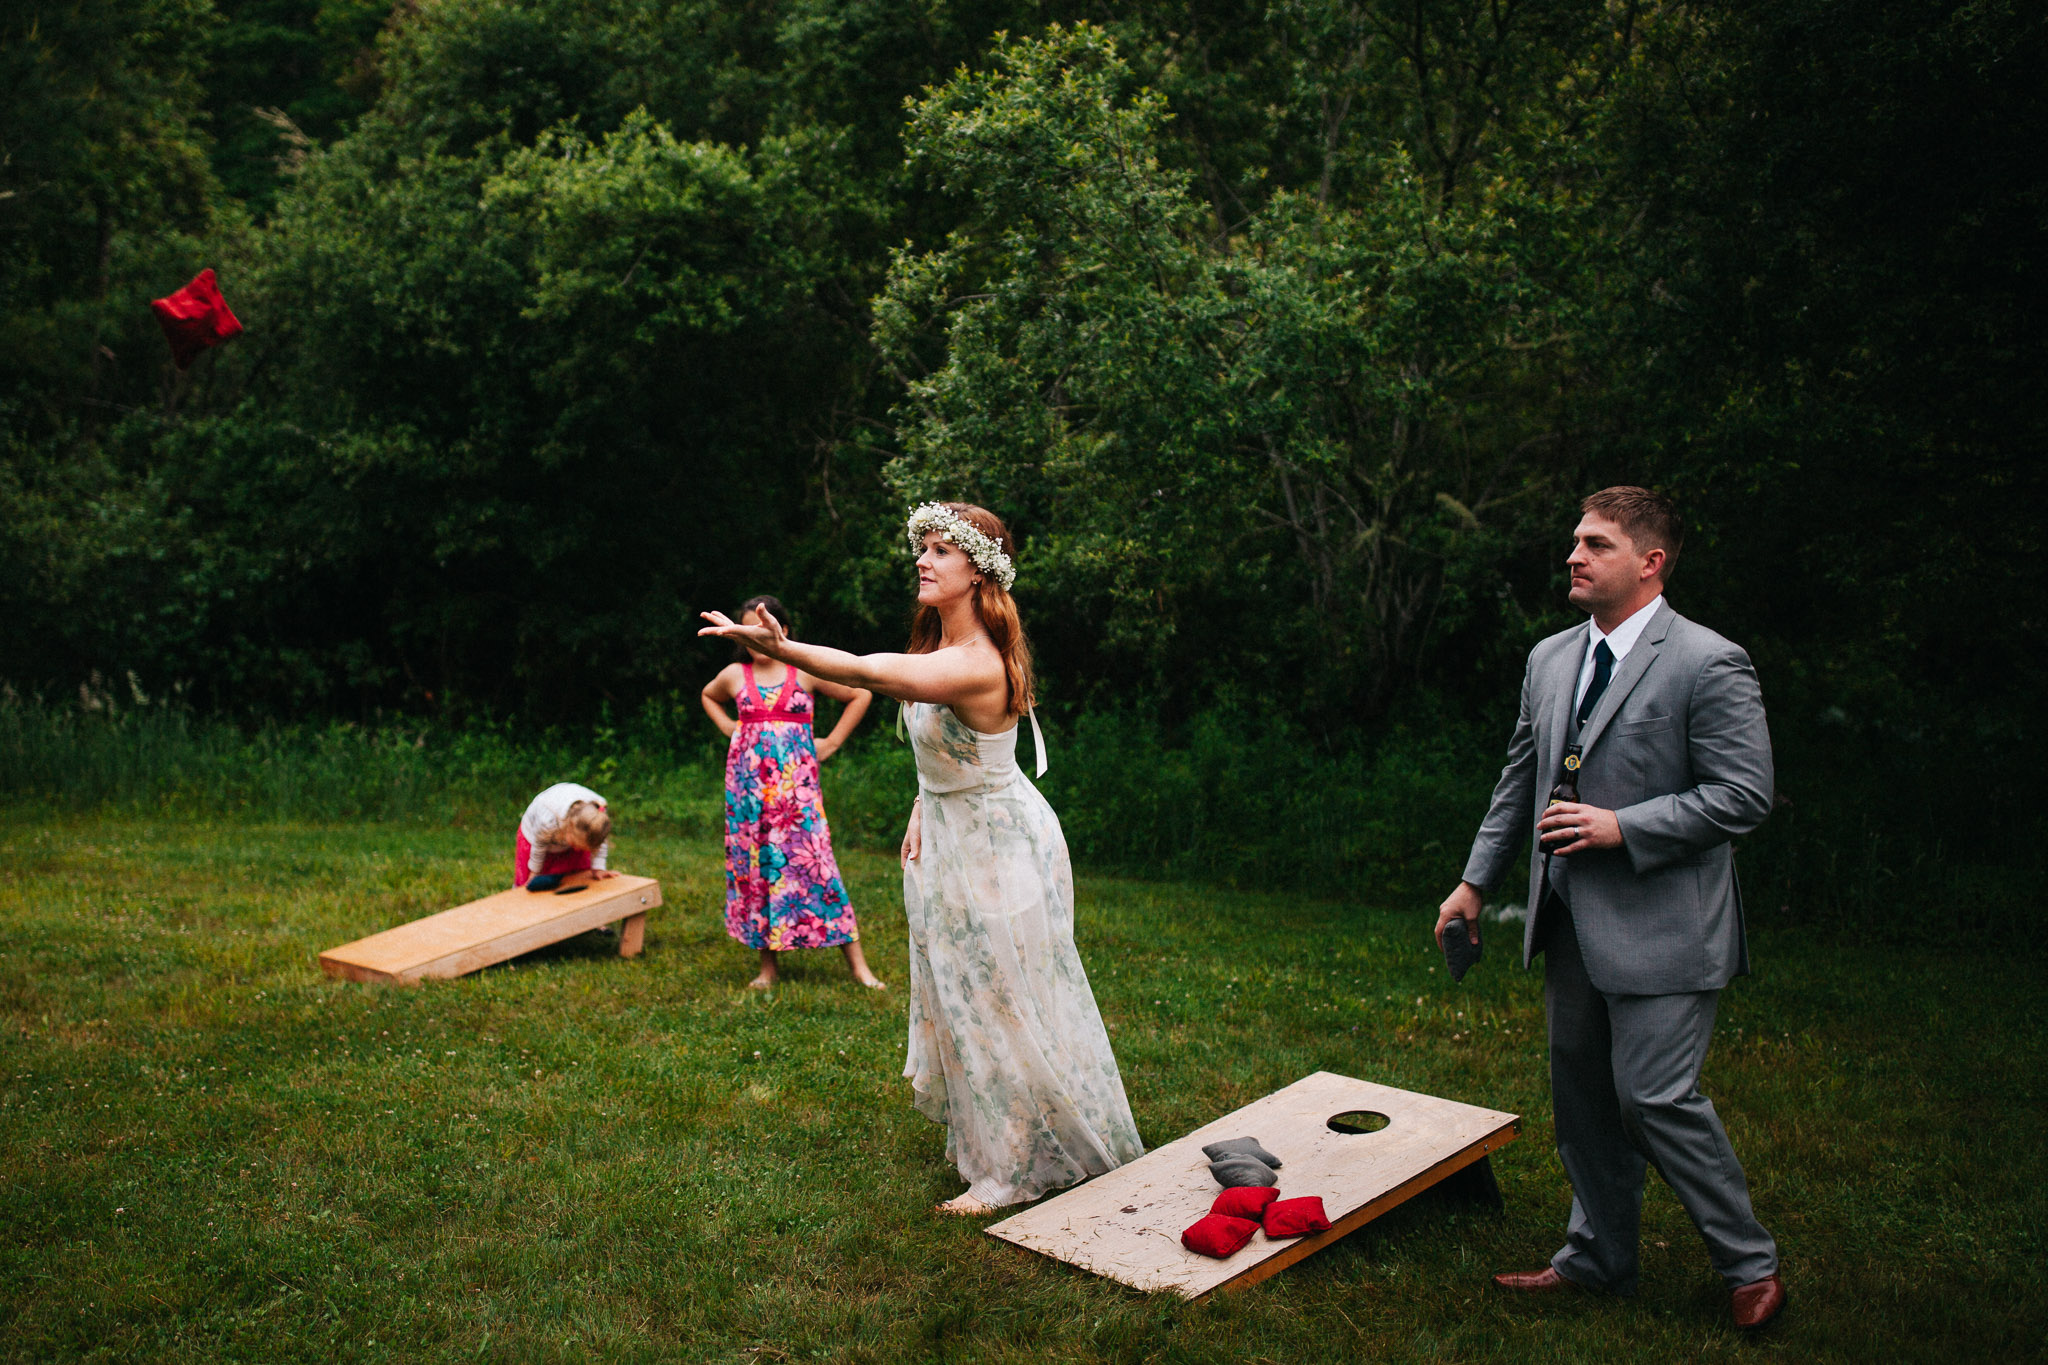 cornhole with bride and groom